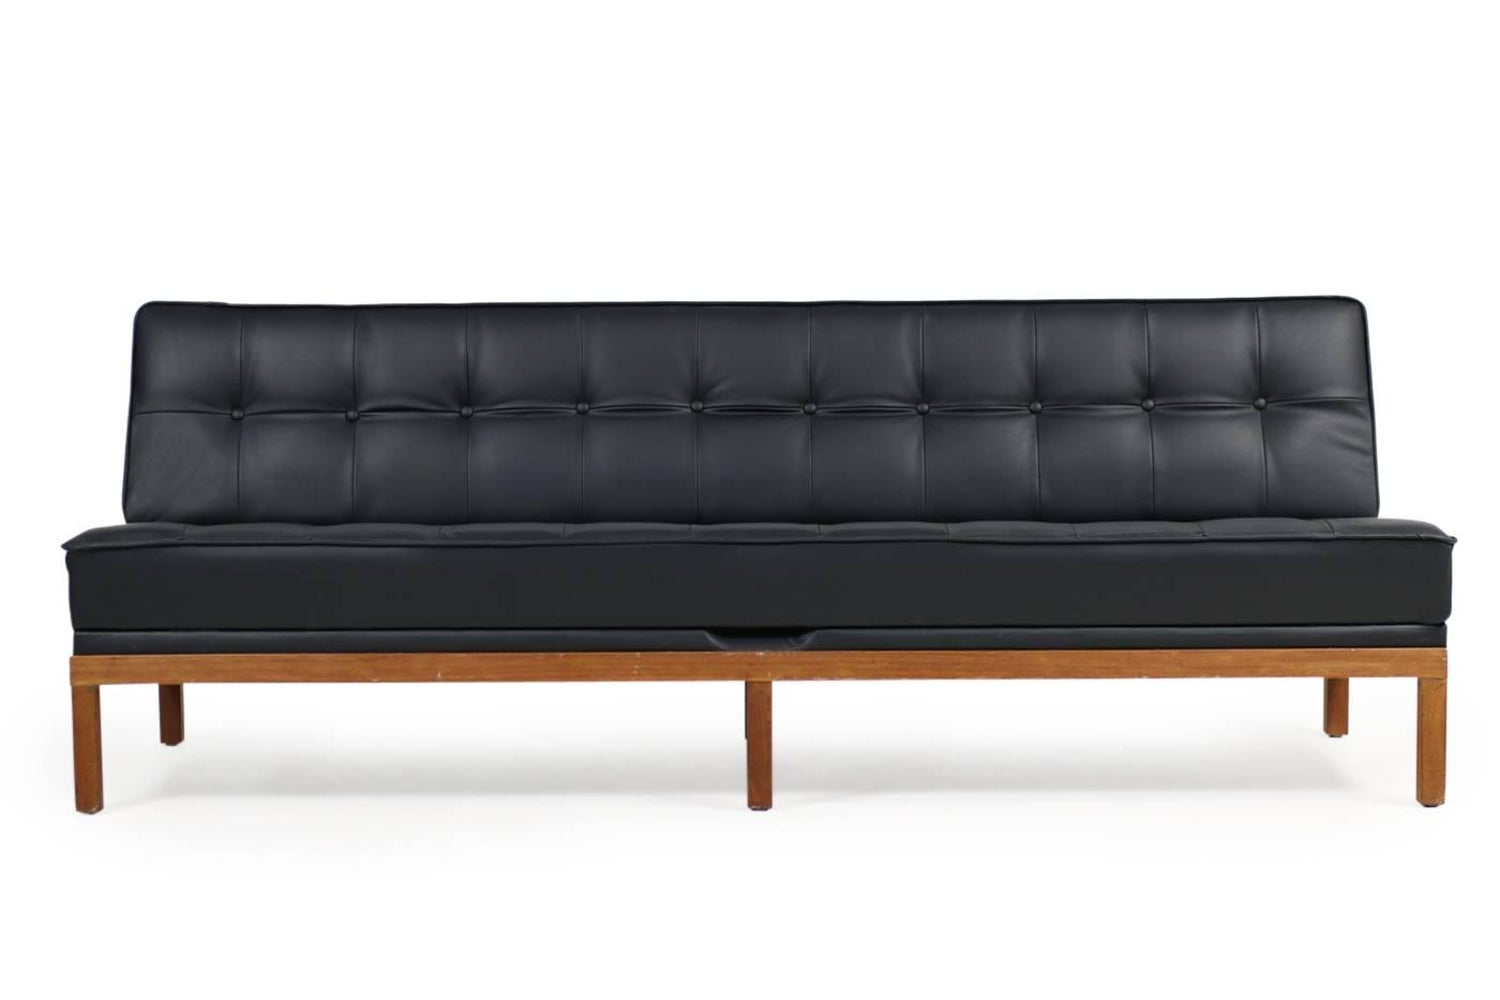 1960s Daybed By Johannes Spalt Mod Constanze For Wittmann Teak And Leather Sofa At 1stdibs